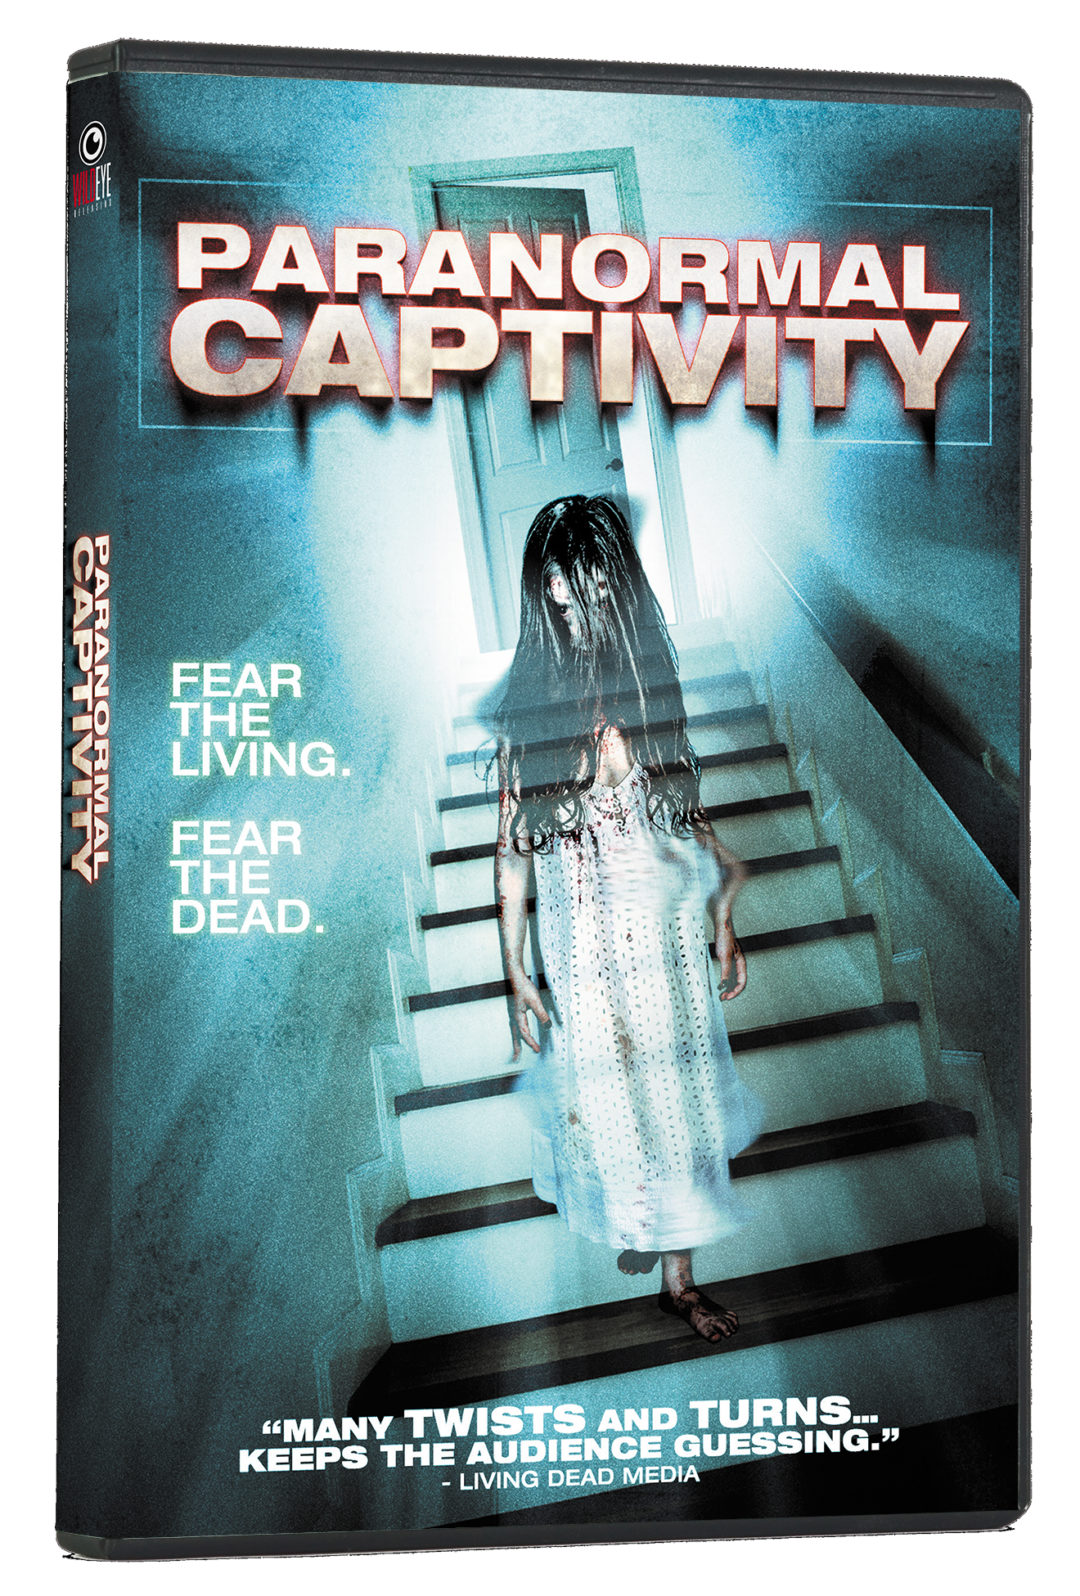 Paranormal Captivity DVD